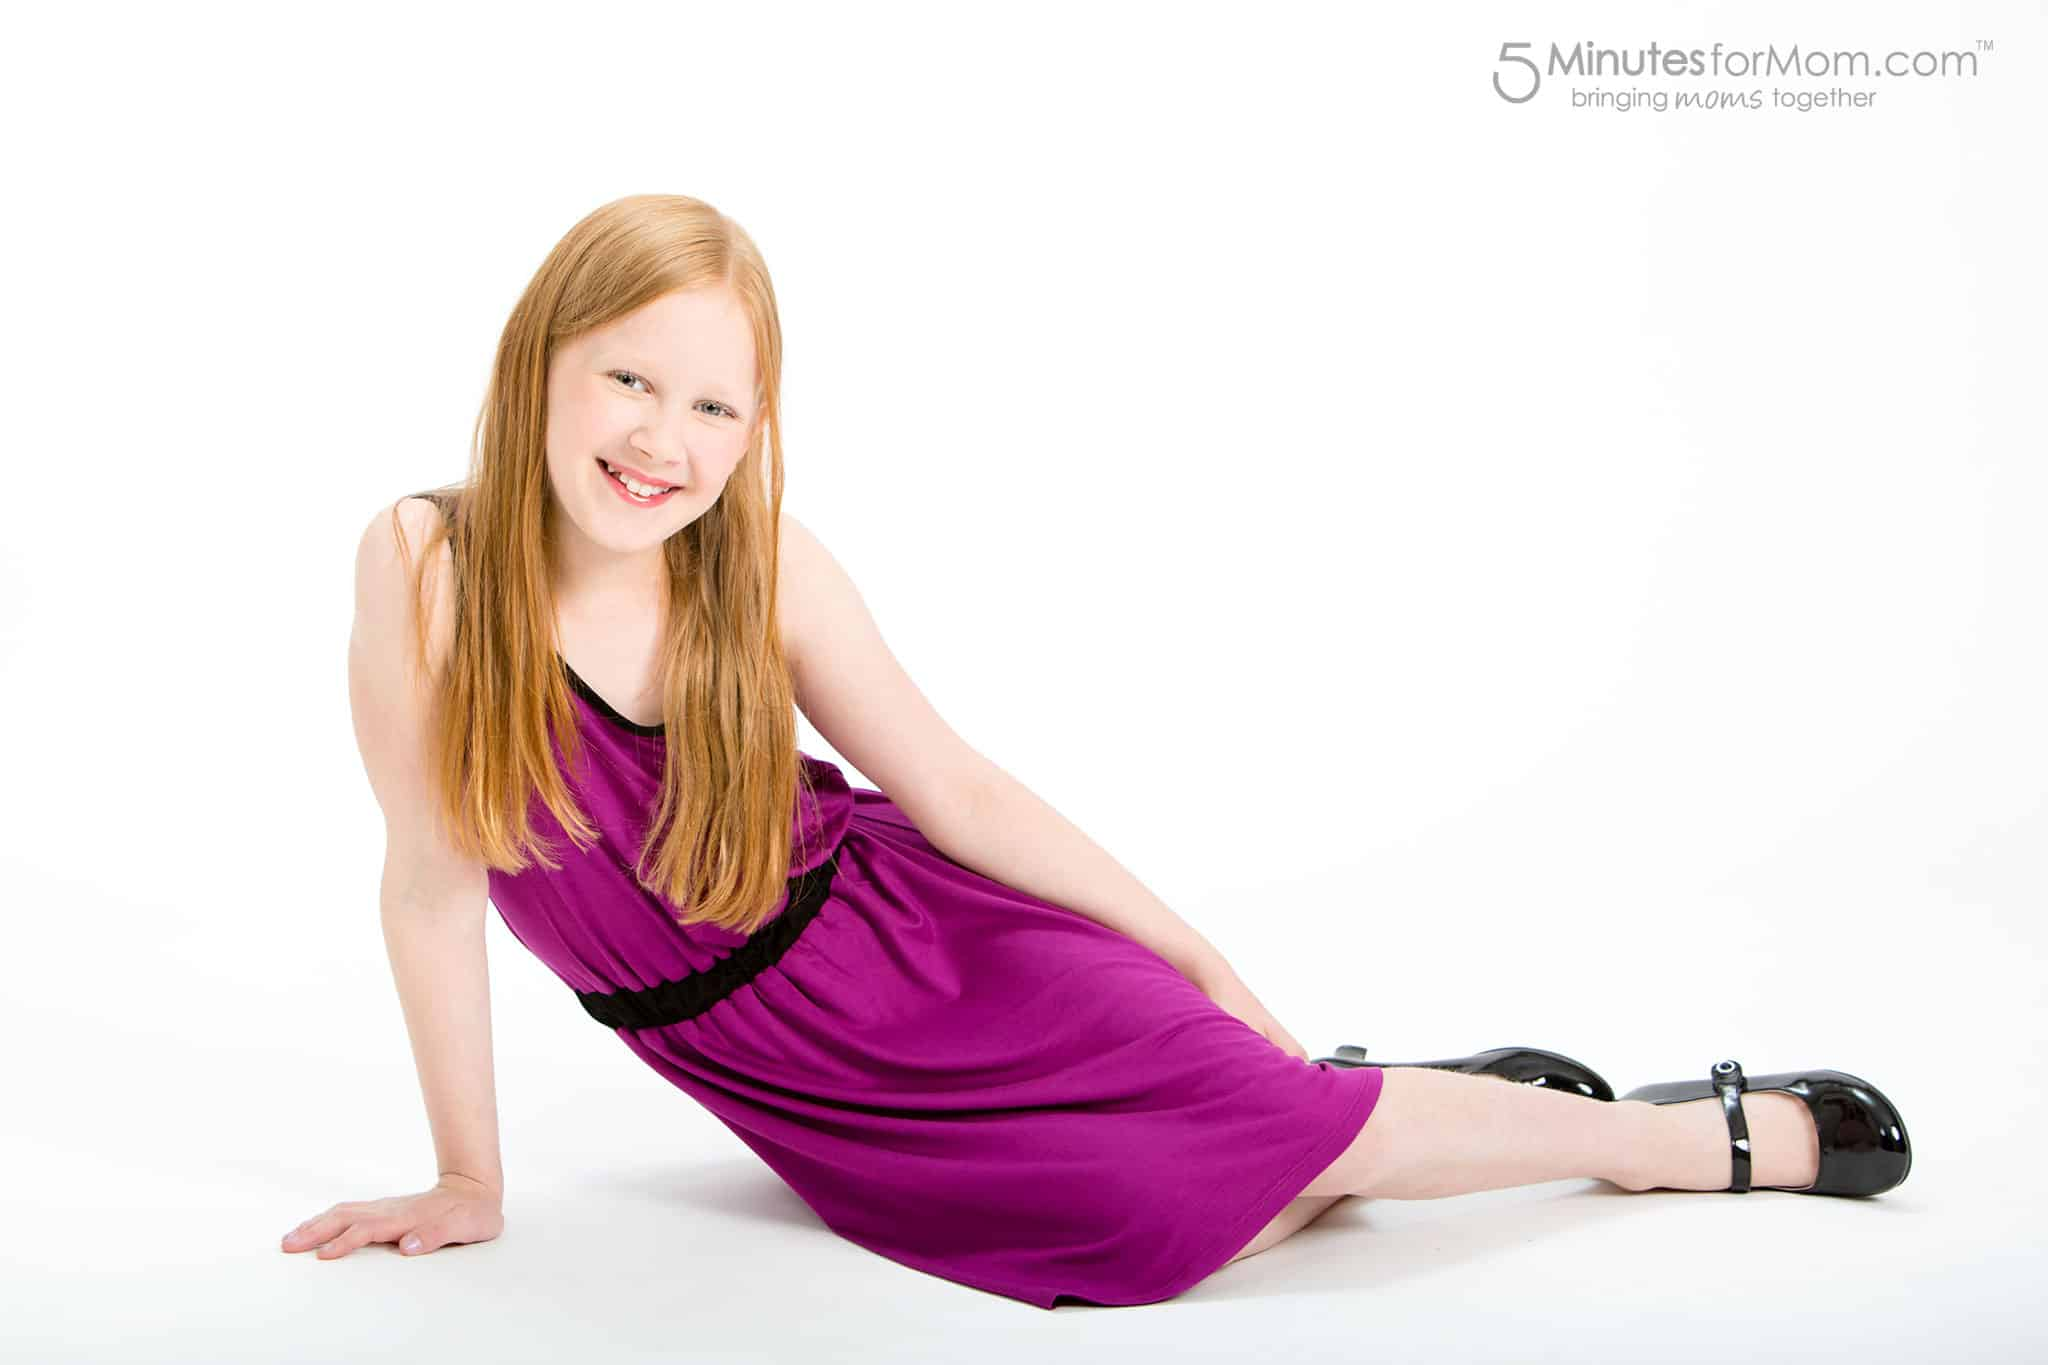 Evelyn Alex - Clothes for Tween Girls - Purple Dress for Tweens